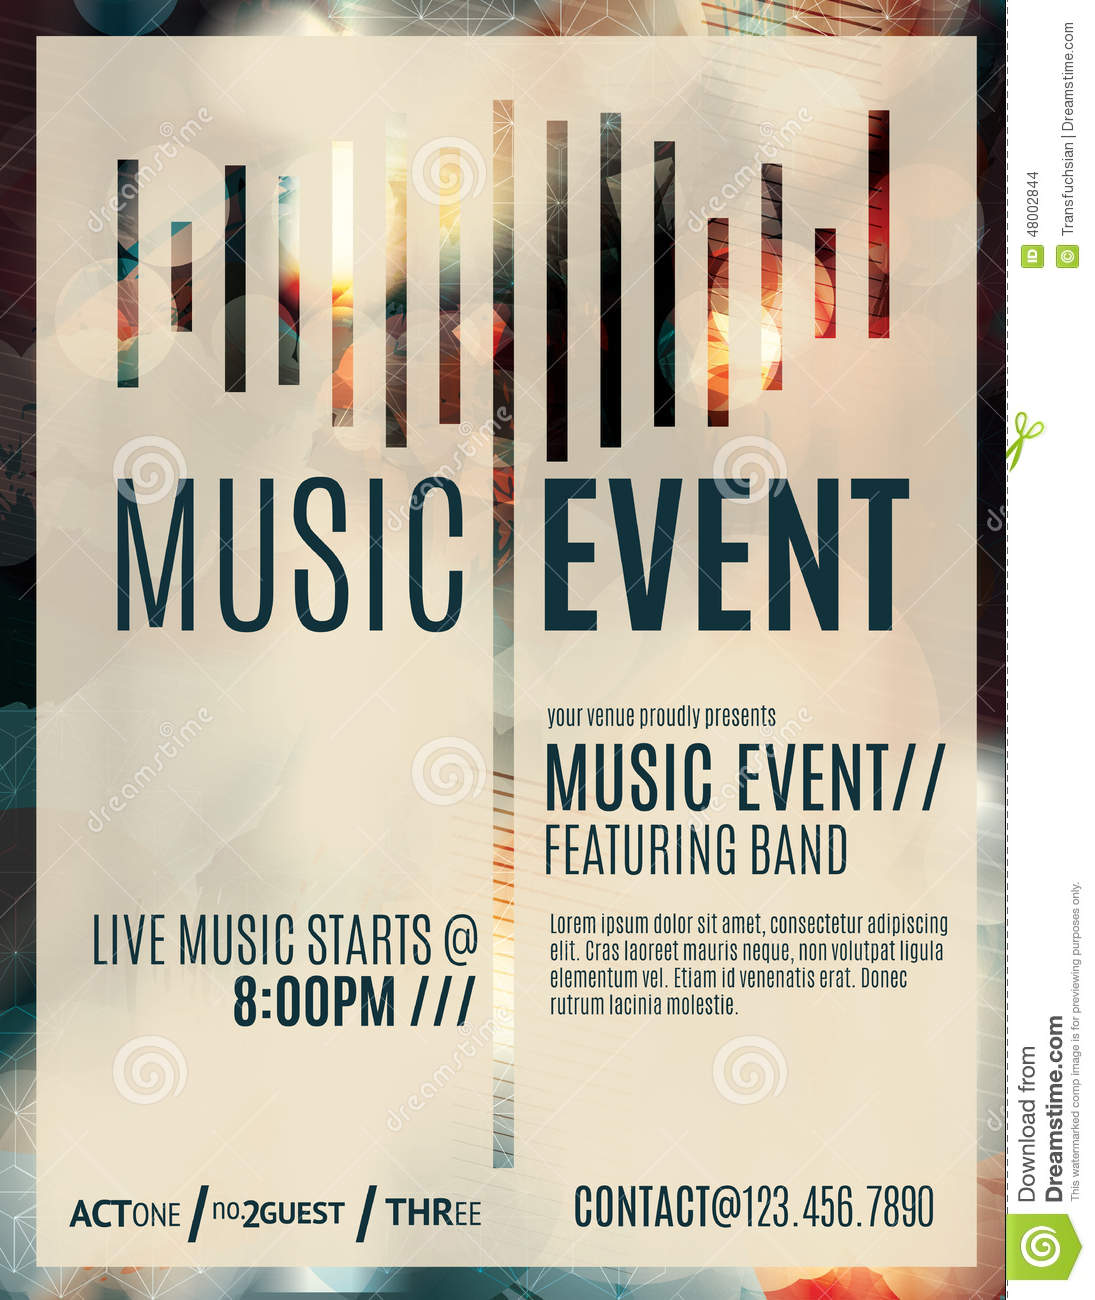 event brochure template - music event flyer template stock vector illustration of